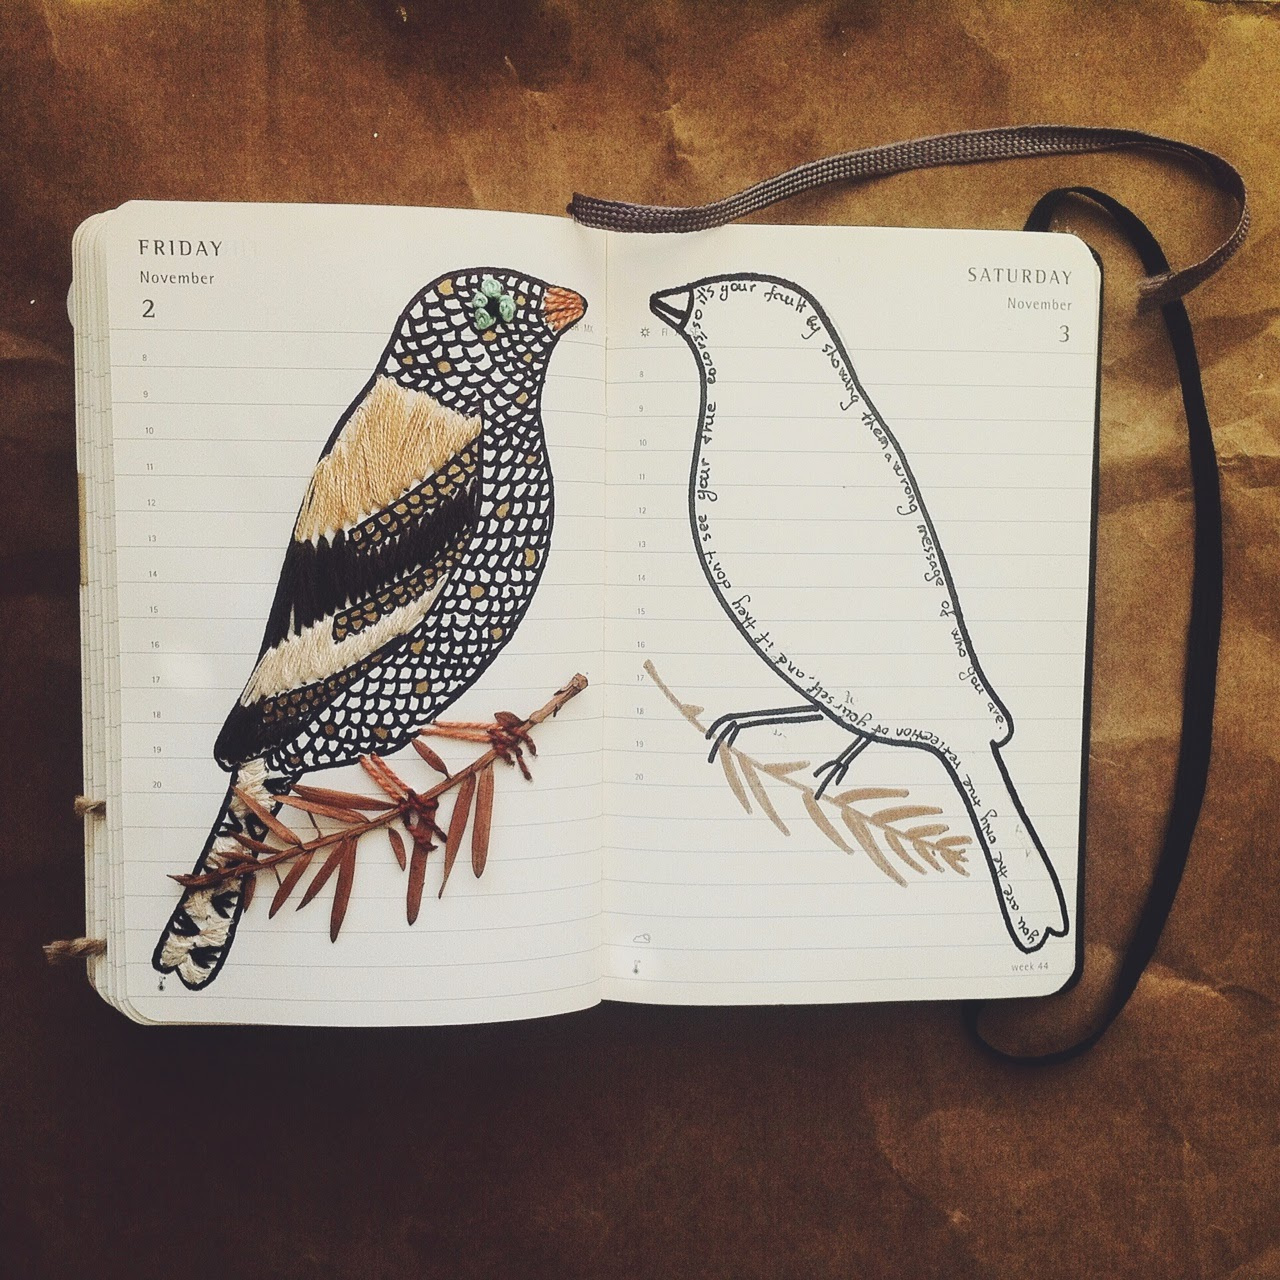 embroidery on paper, moleskine illustration journal, easy down to earth living, los angeles eco-friendly lifestyle blog, props stylist los angeles, conscious style blog, tlv birdie blog, oly shamrik, nature loving lifestyle, natural style, art journal, birds